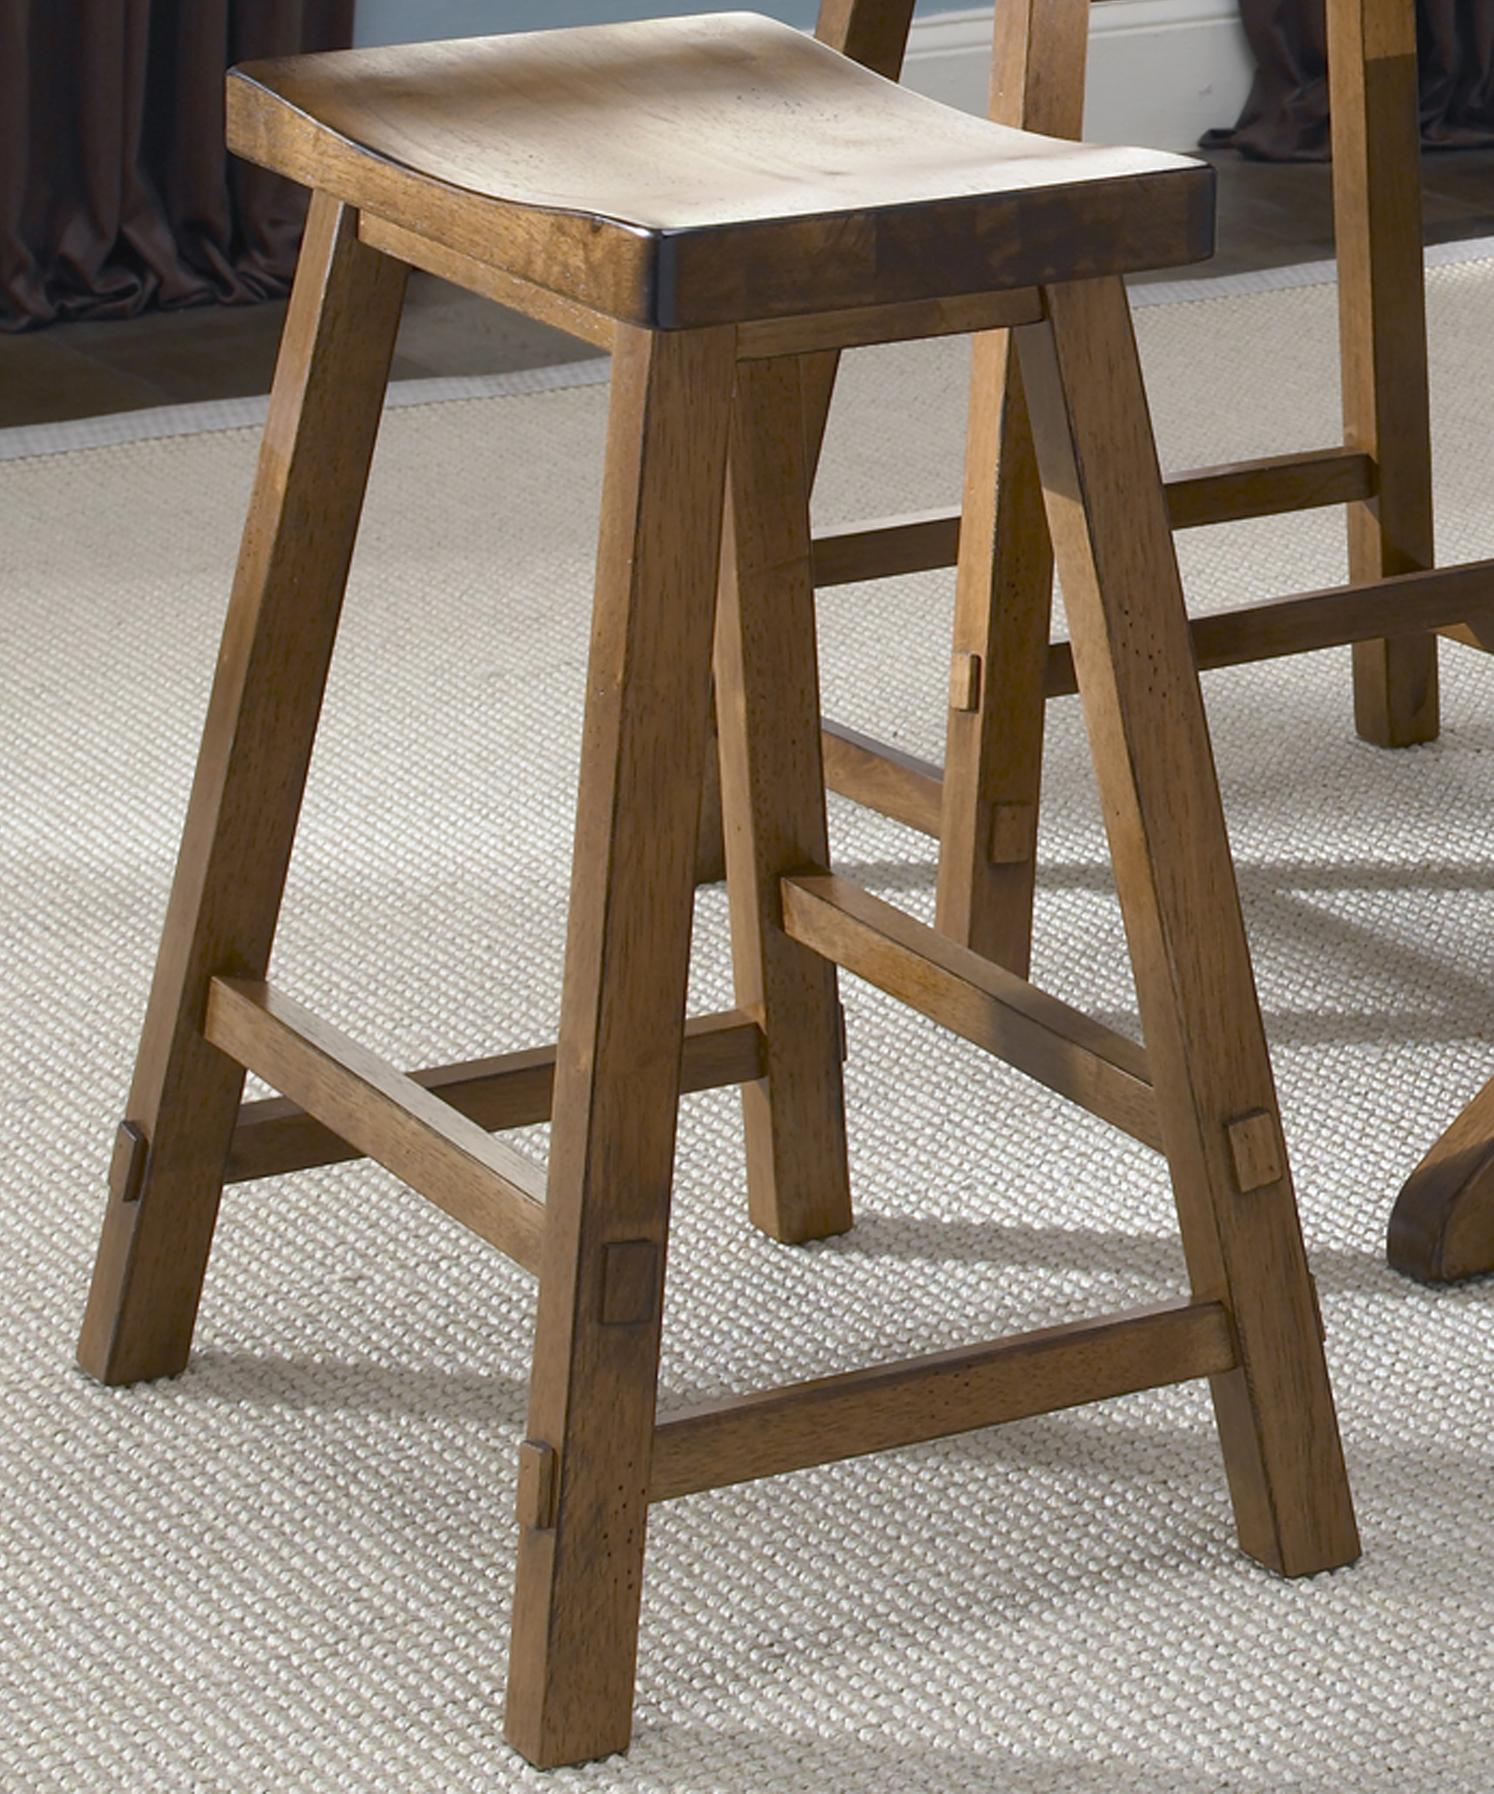 Shop Bar Stools | Wolf and Gardiner Wolf Furniture